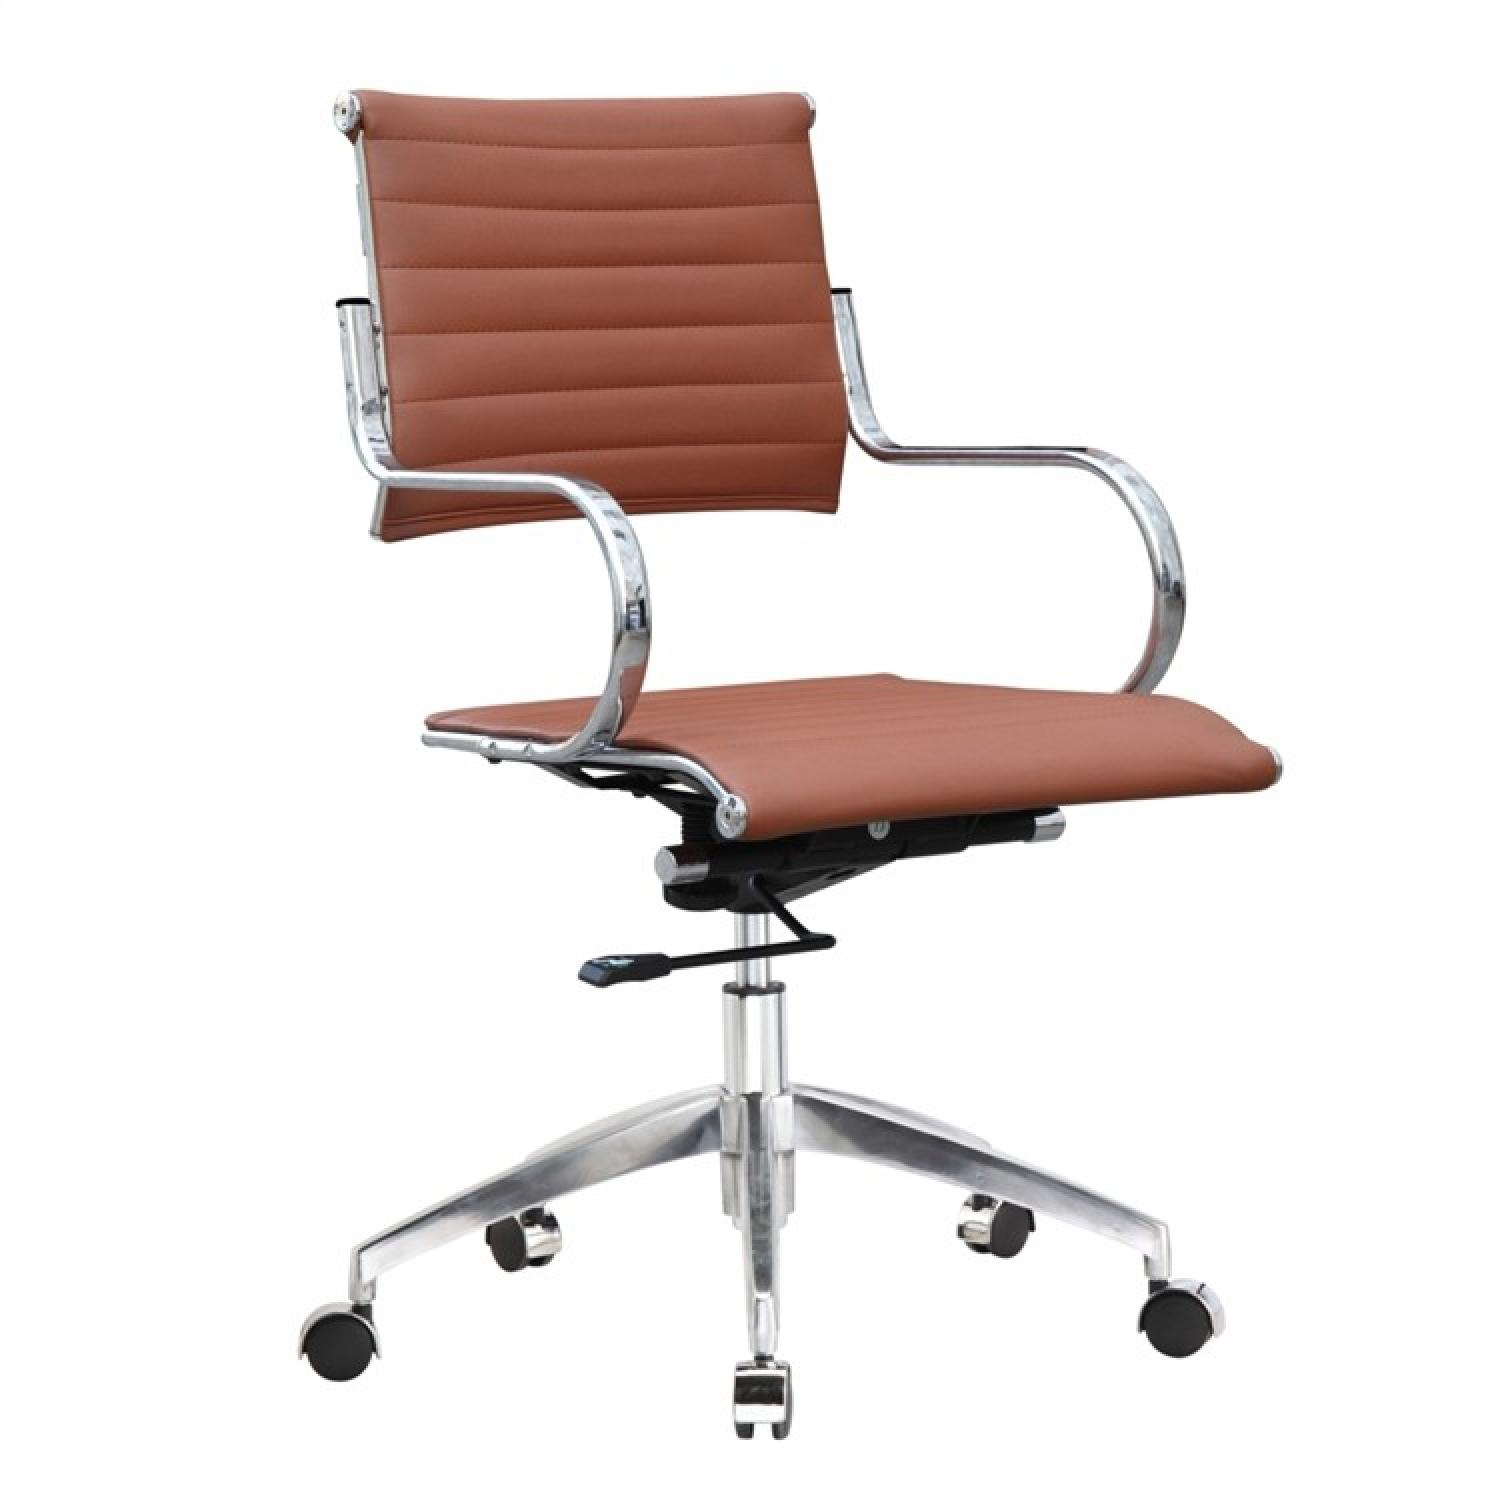 Modern Mid Back Office Chair w/ Stainless Steel Frame & Ligh